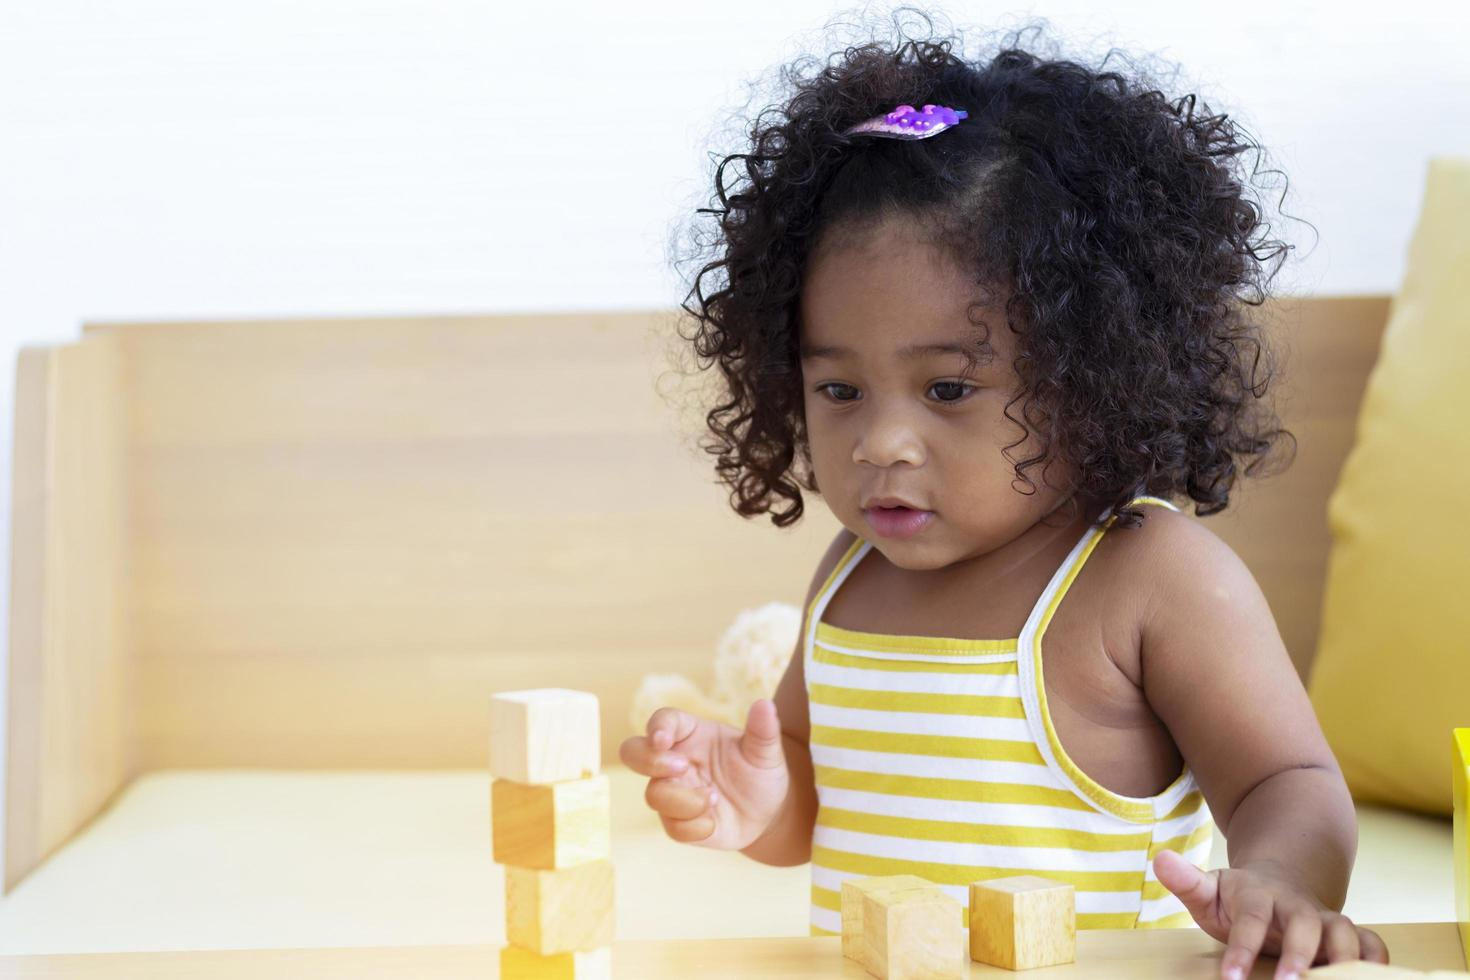 Portraits baby girl  having fun with toys Concept of child learning and development photo